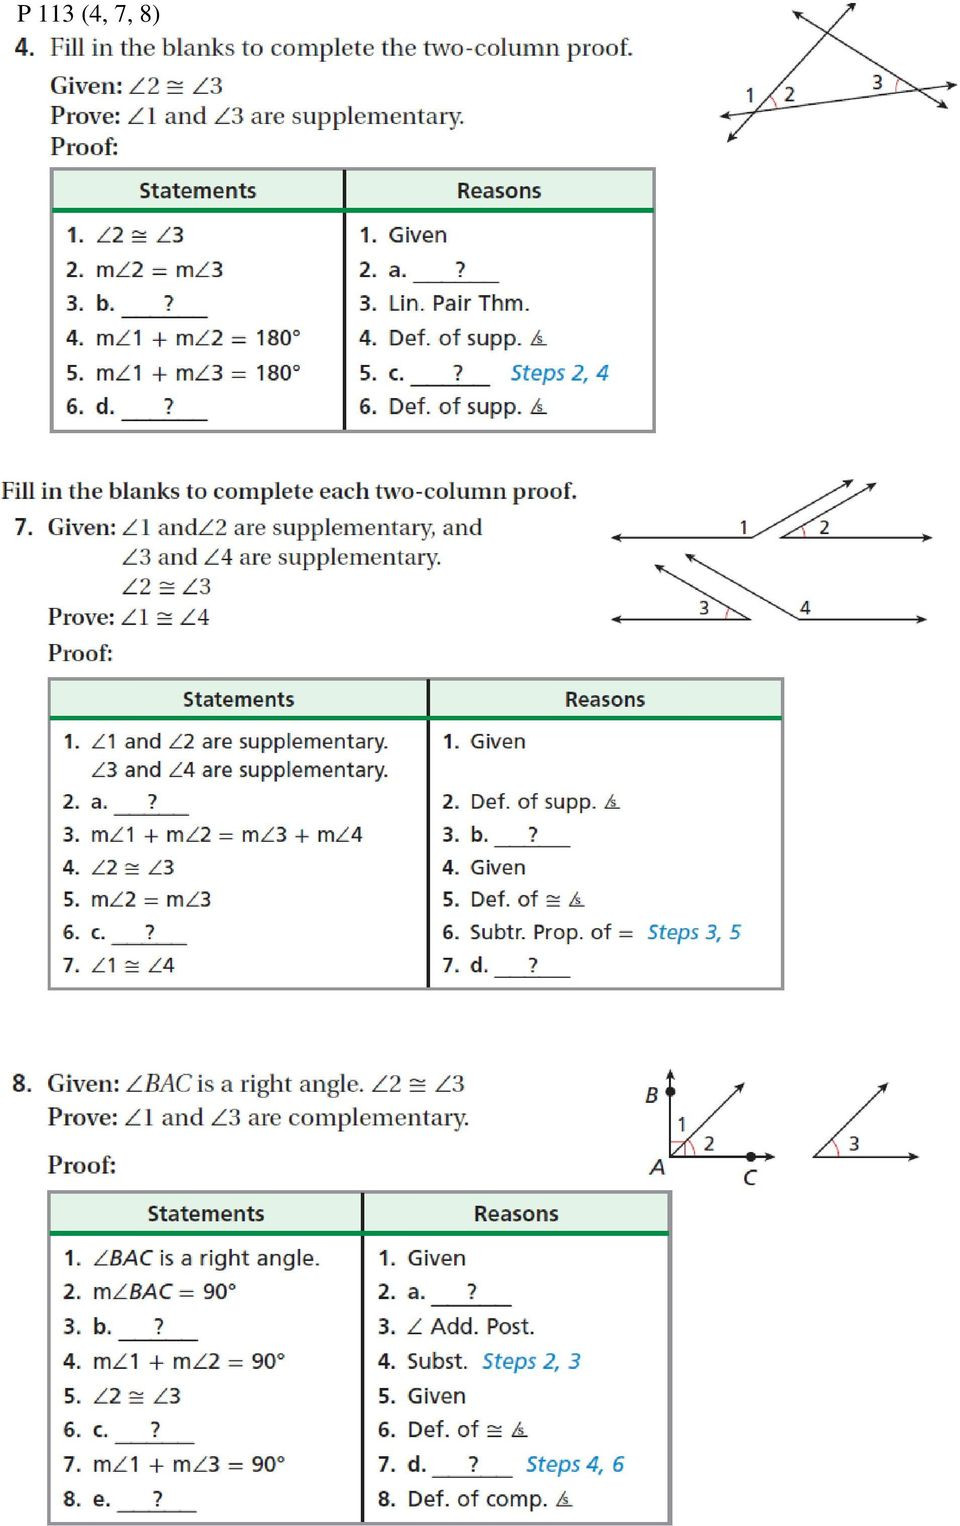 Geometry Proof Practice Worksheet theorem Prove Given Dates assignments and Quizzes Subject